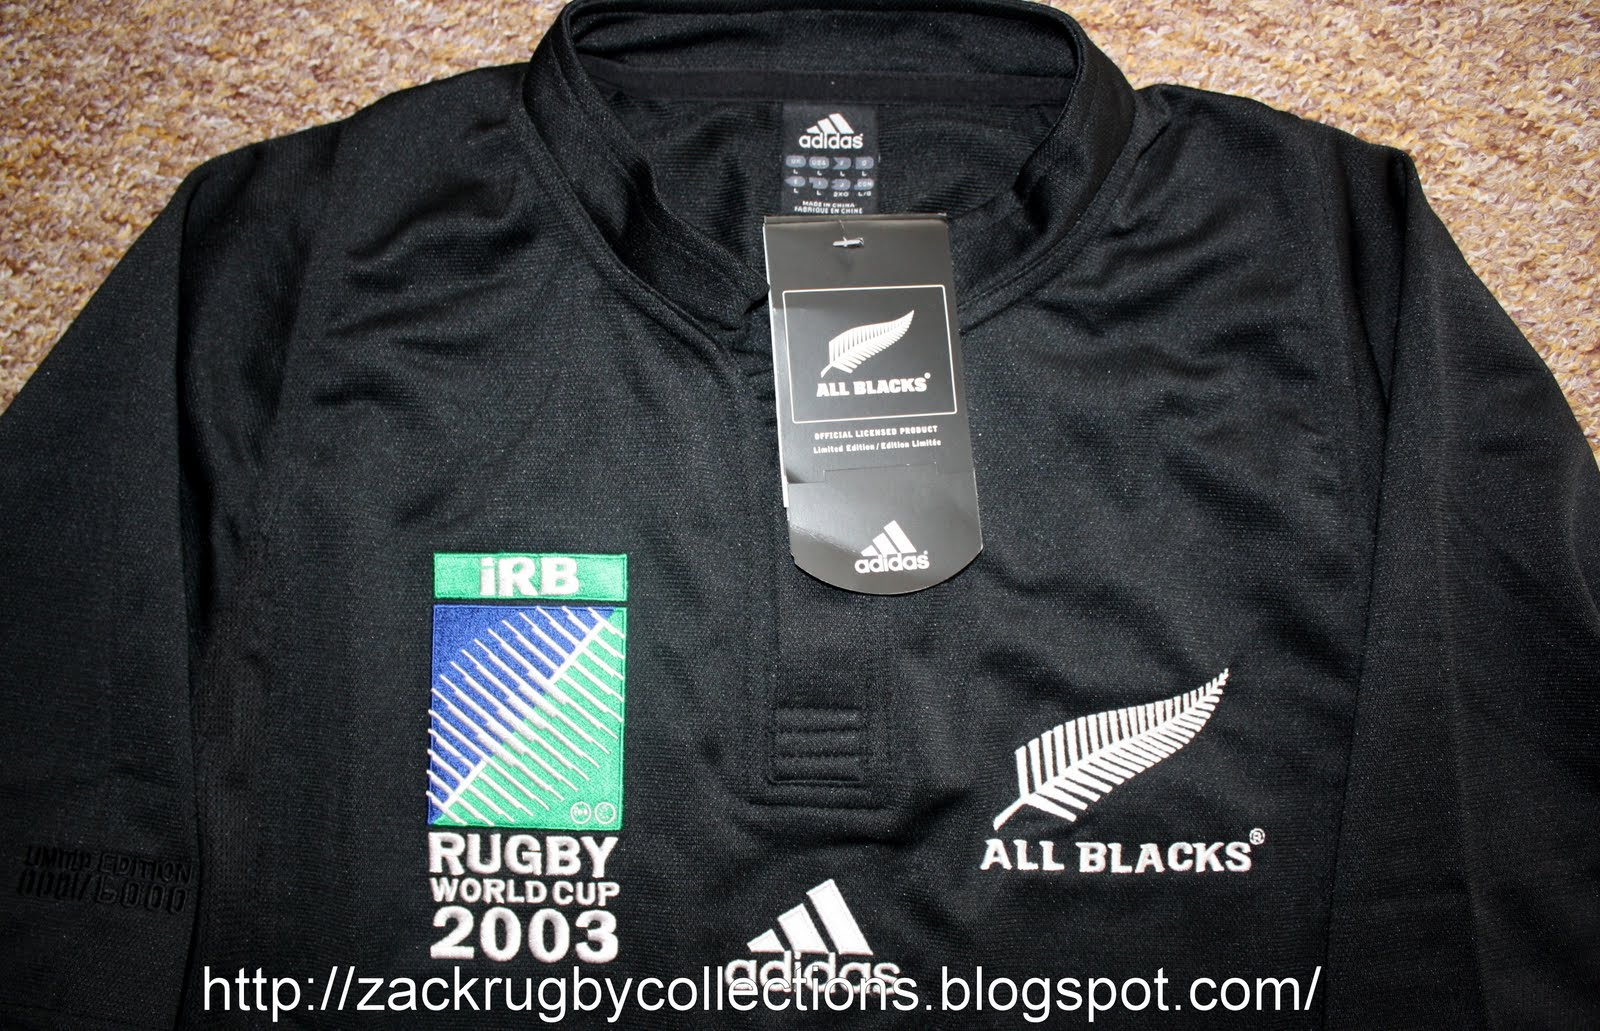 258b5f83edf Special Edition: New Zealand All Blacks SS Rugby World Cup 2003 LTD Edition  Rugby Jersey